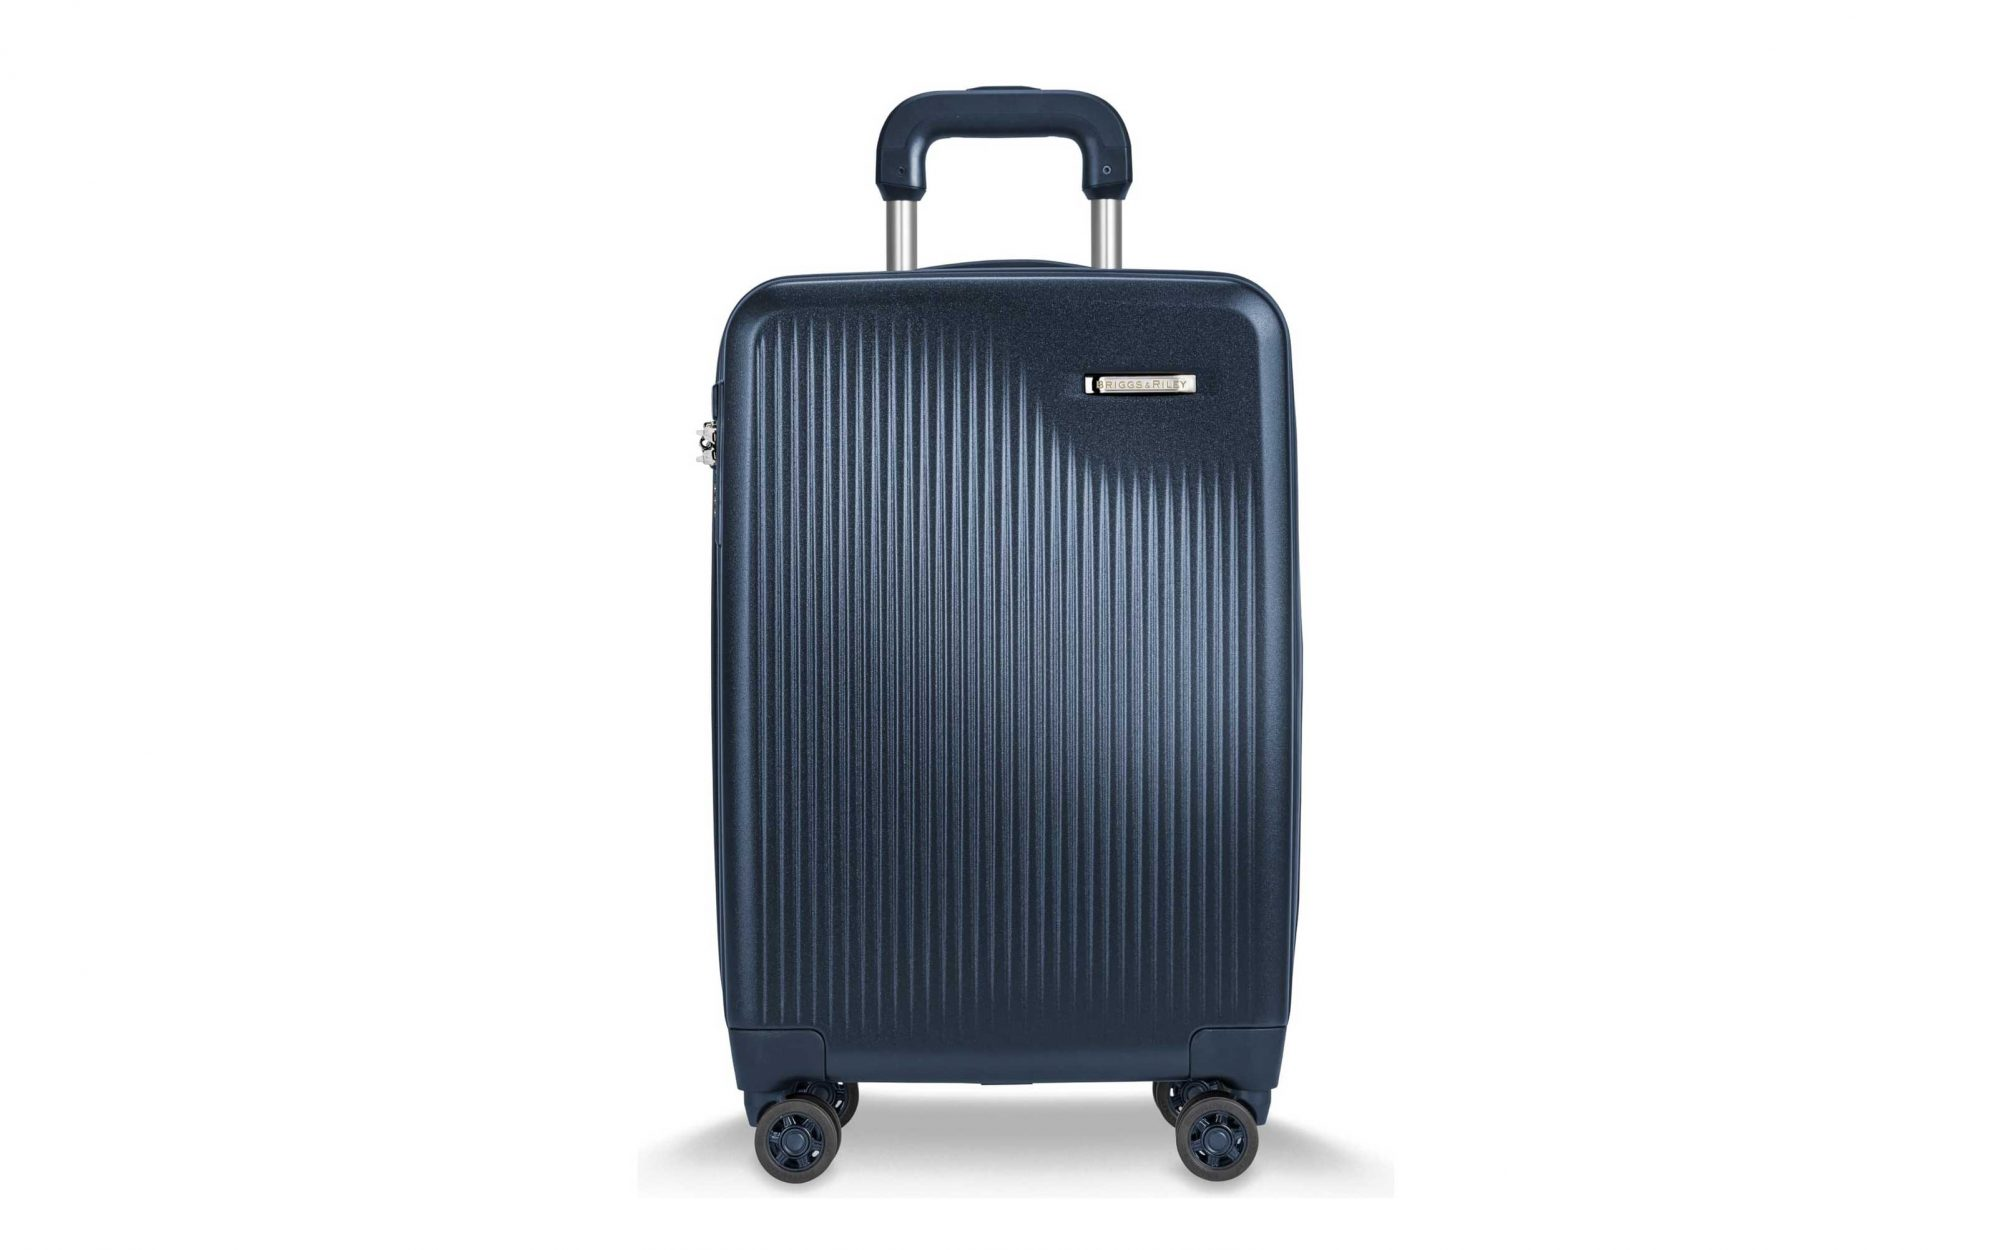 The Best Carry On Luggage Of 2019 According To Travel